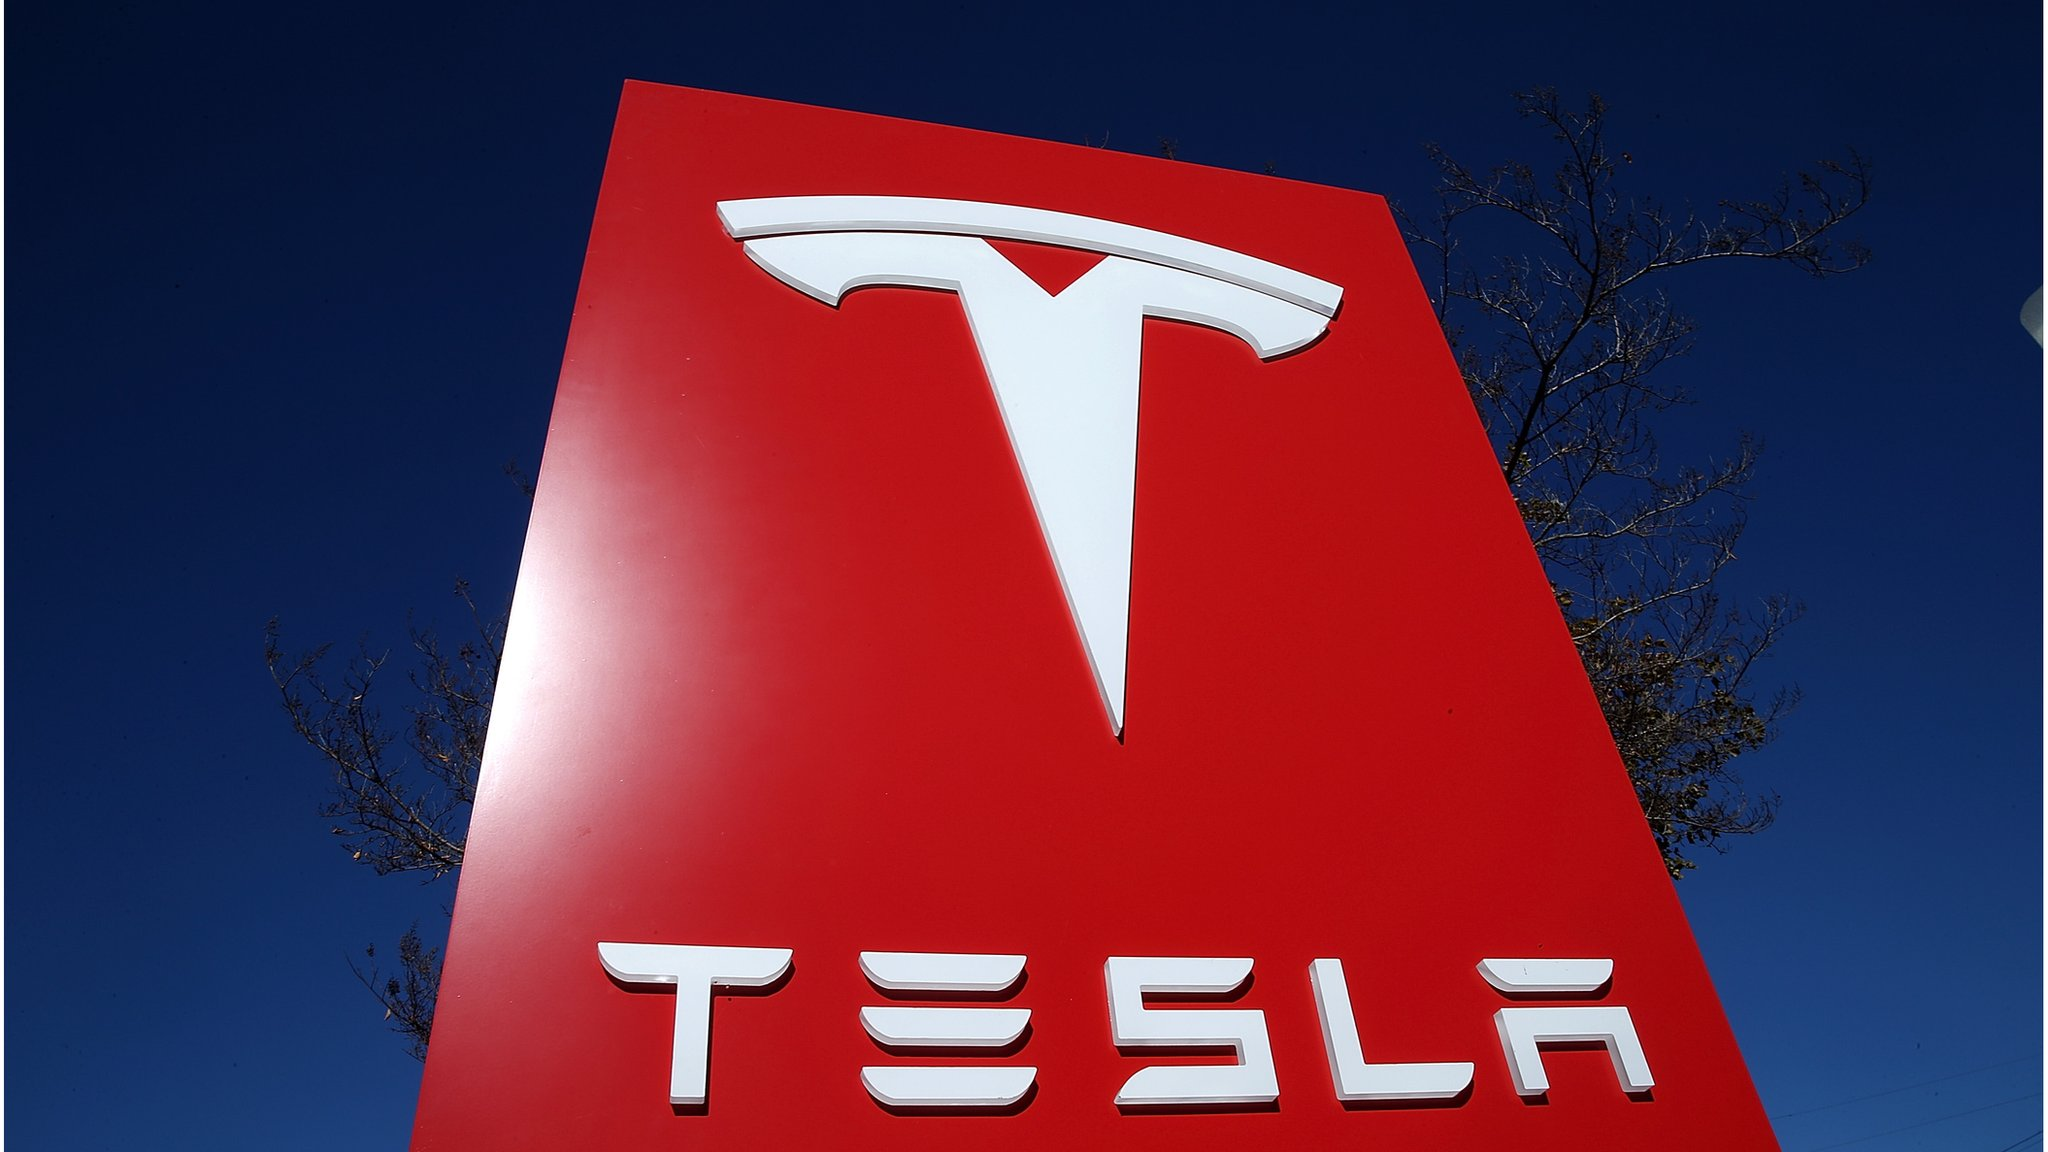 Tesla 'removed' from fatal car crash probe